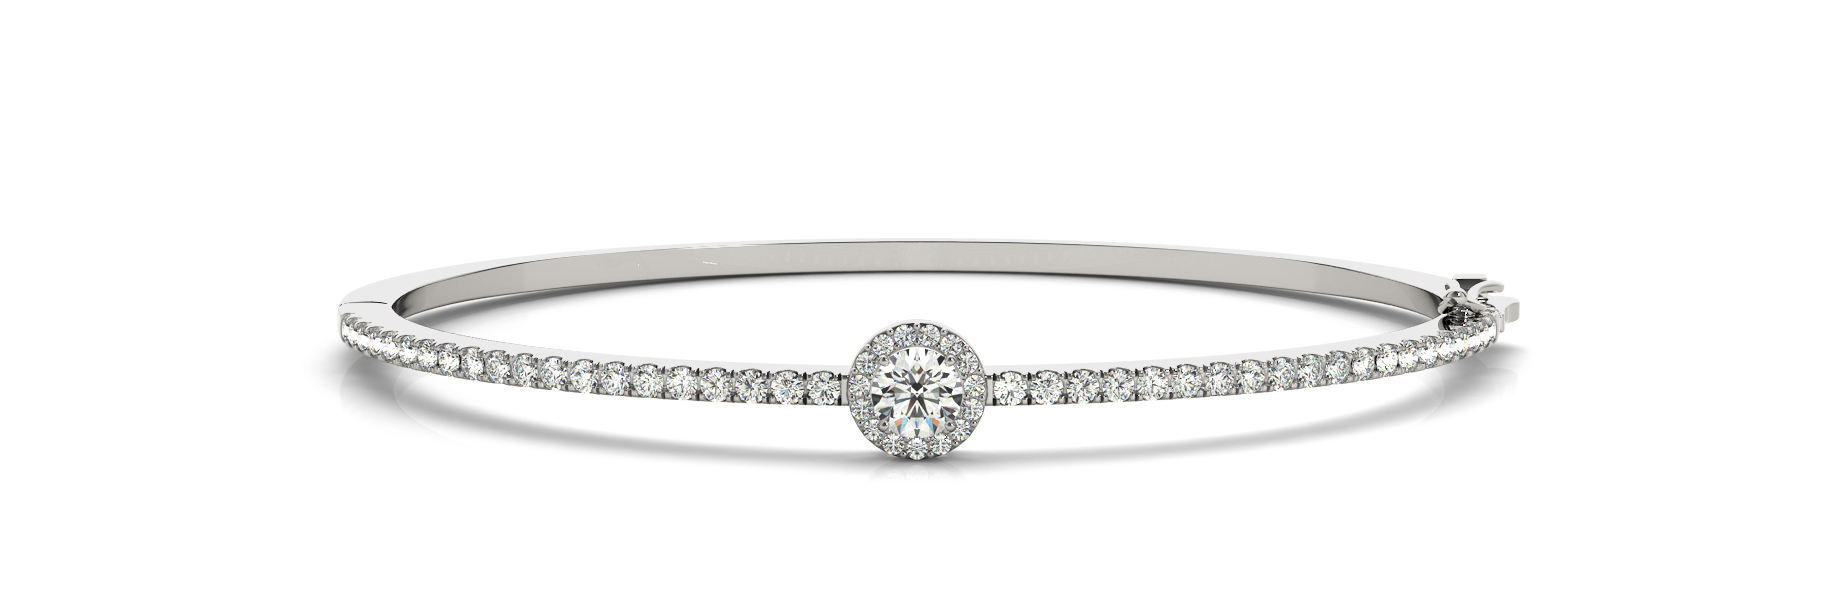 Round Diamond Center Stone Halo Bangle